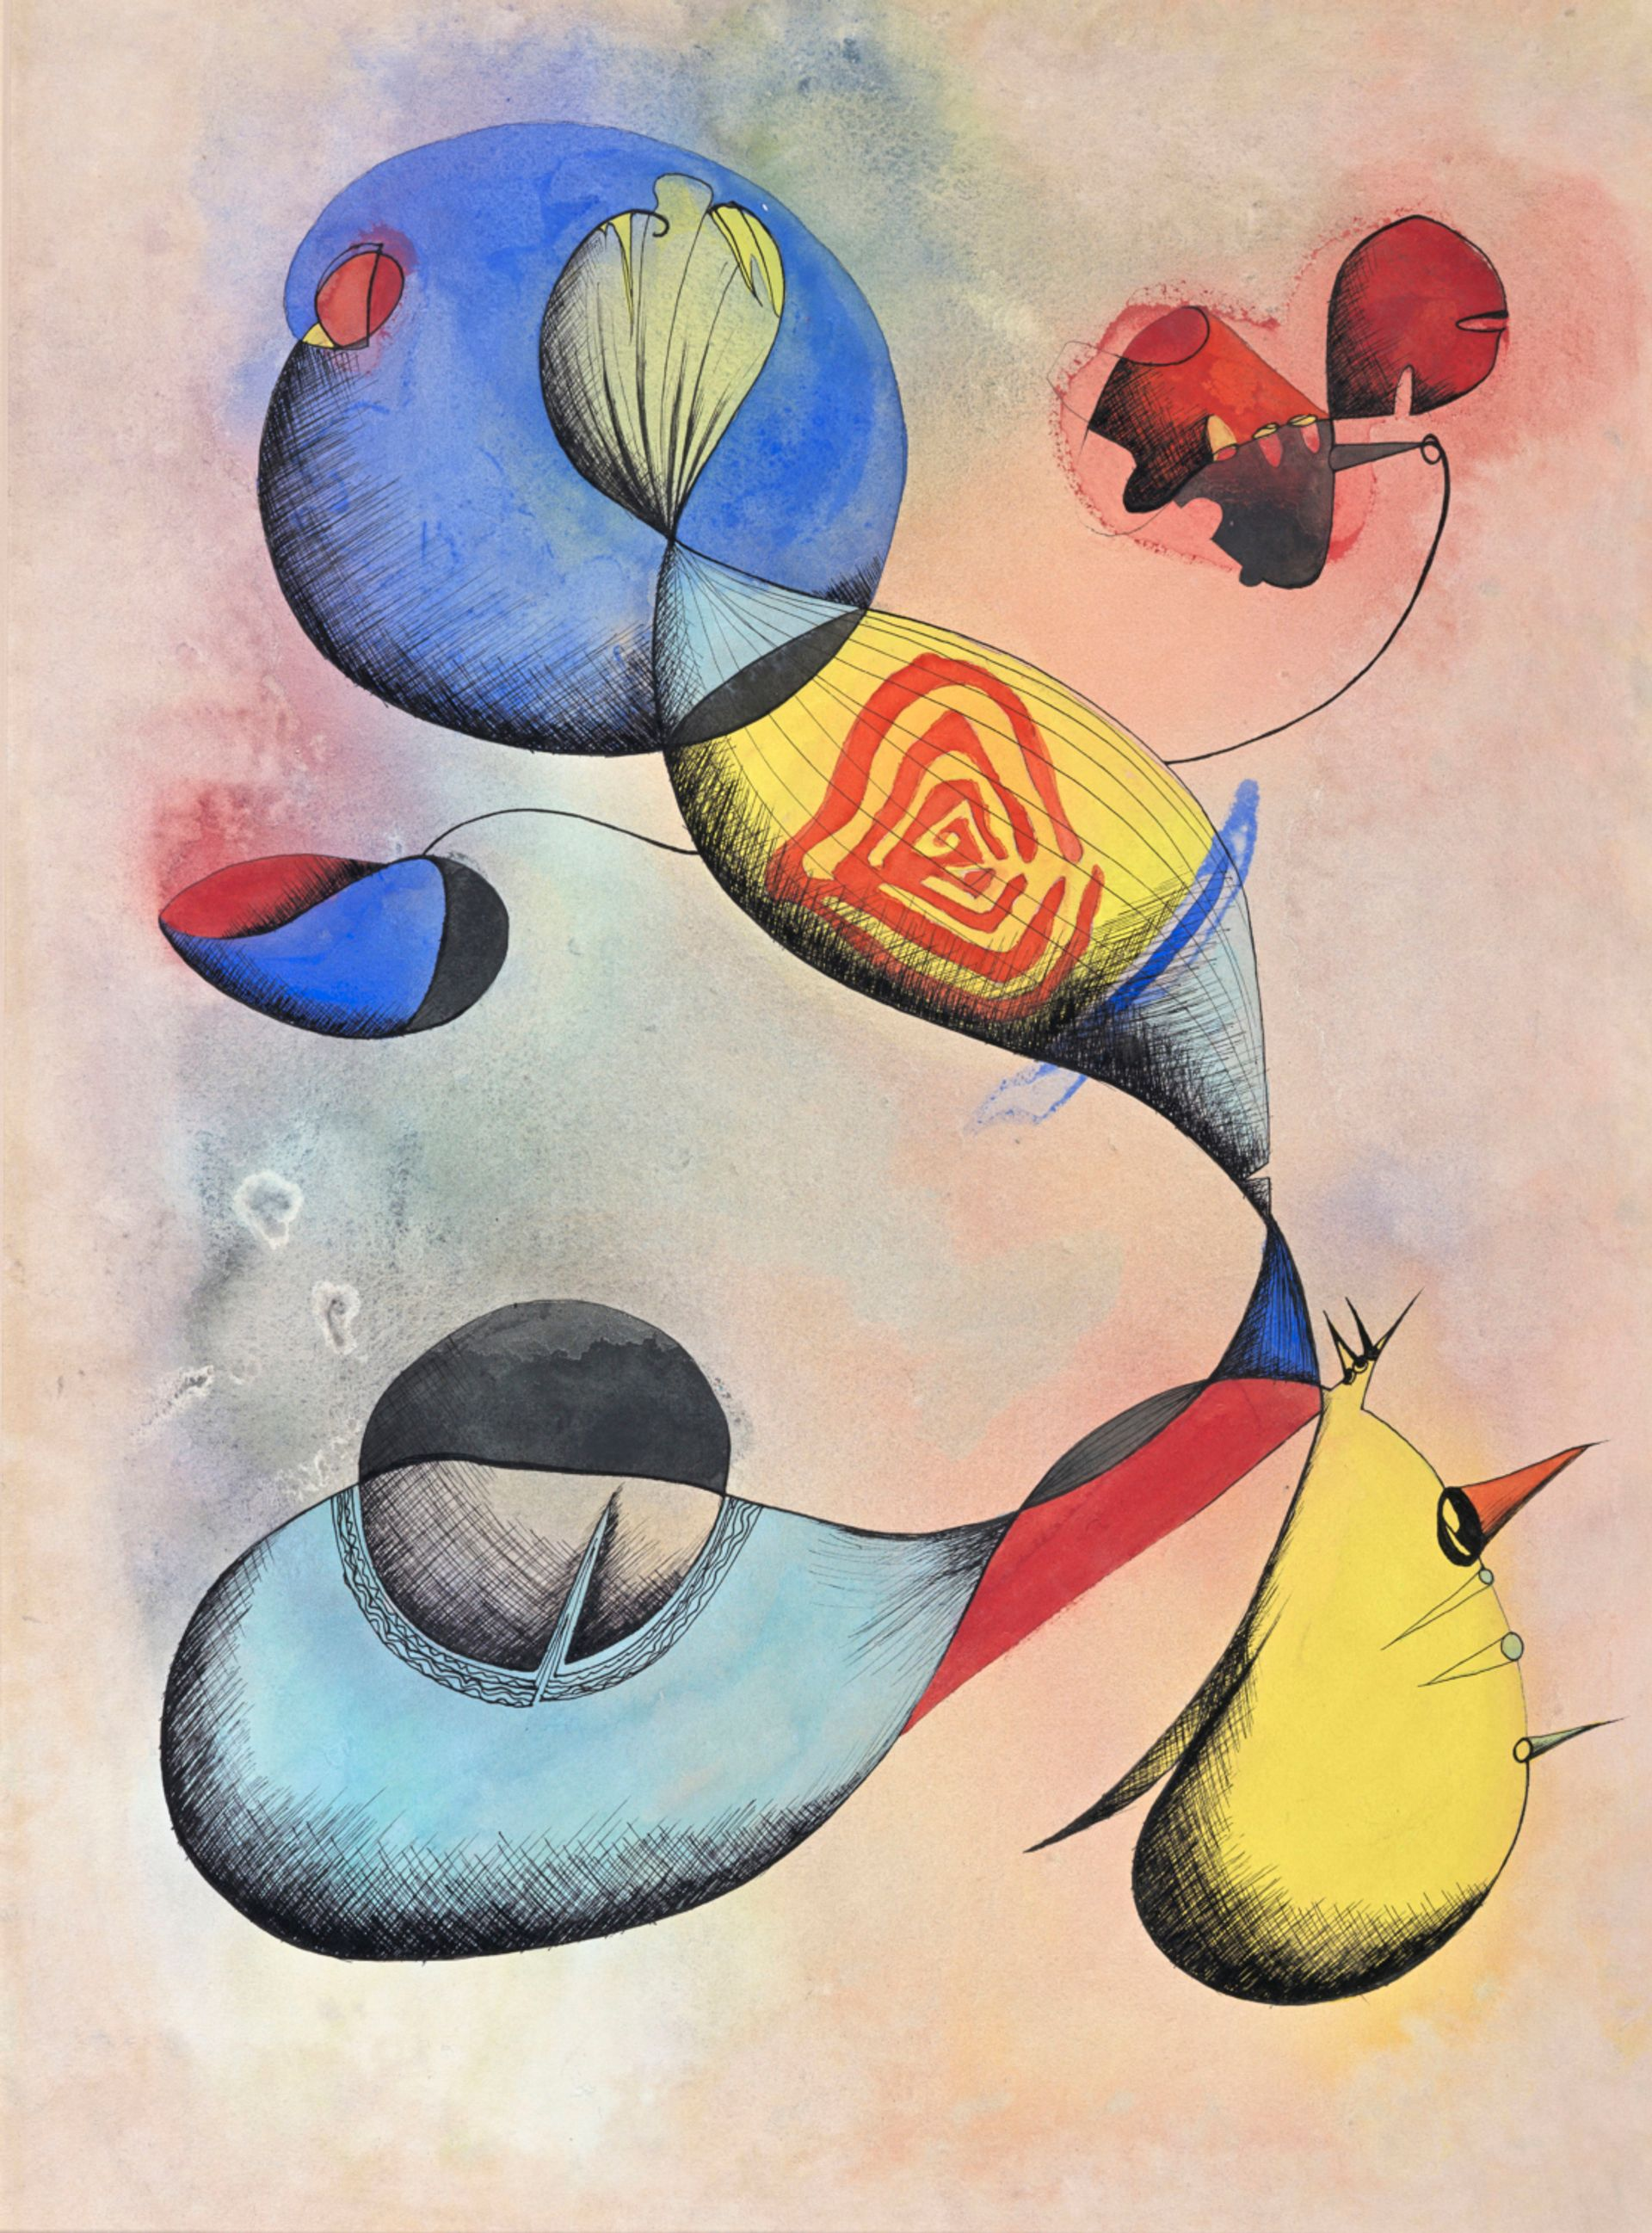 Ithell Colquhoun's Toy (1947) Courtesy Tate Archive: Transferred from the National Trust, 2019